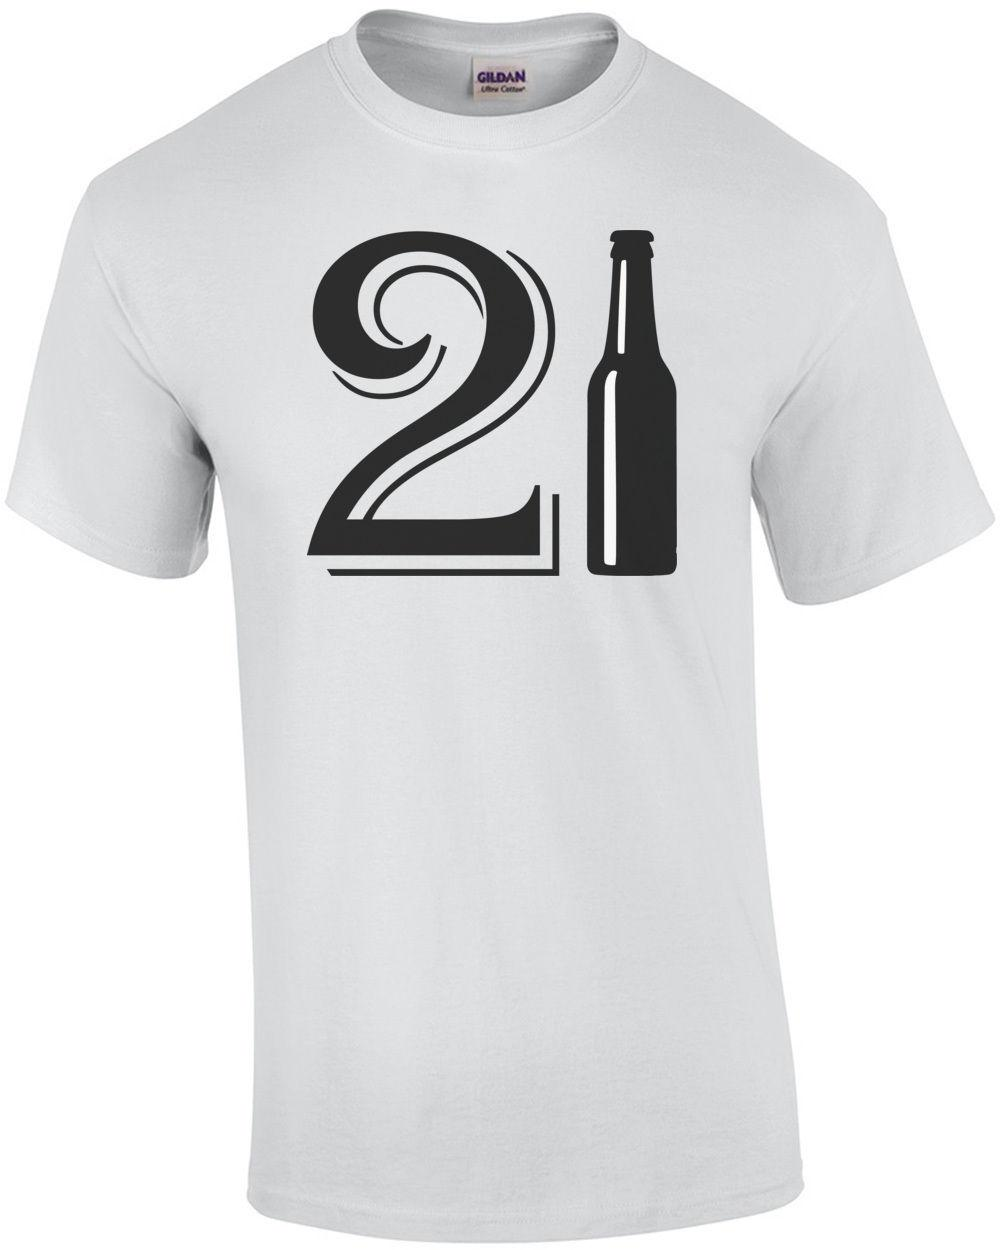 21 BIRTHDAY BEER BOTTLE HAPPY T SHIRT Funny Unisex Casual Top Shirts Online White Shirt From Paystoretees 1296